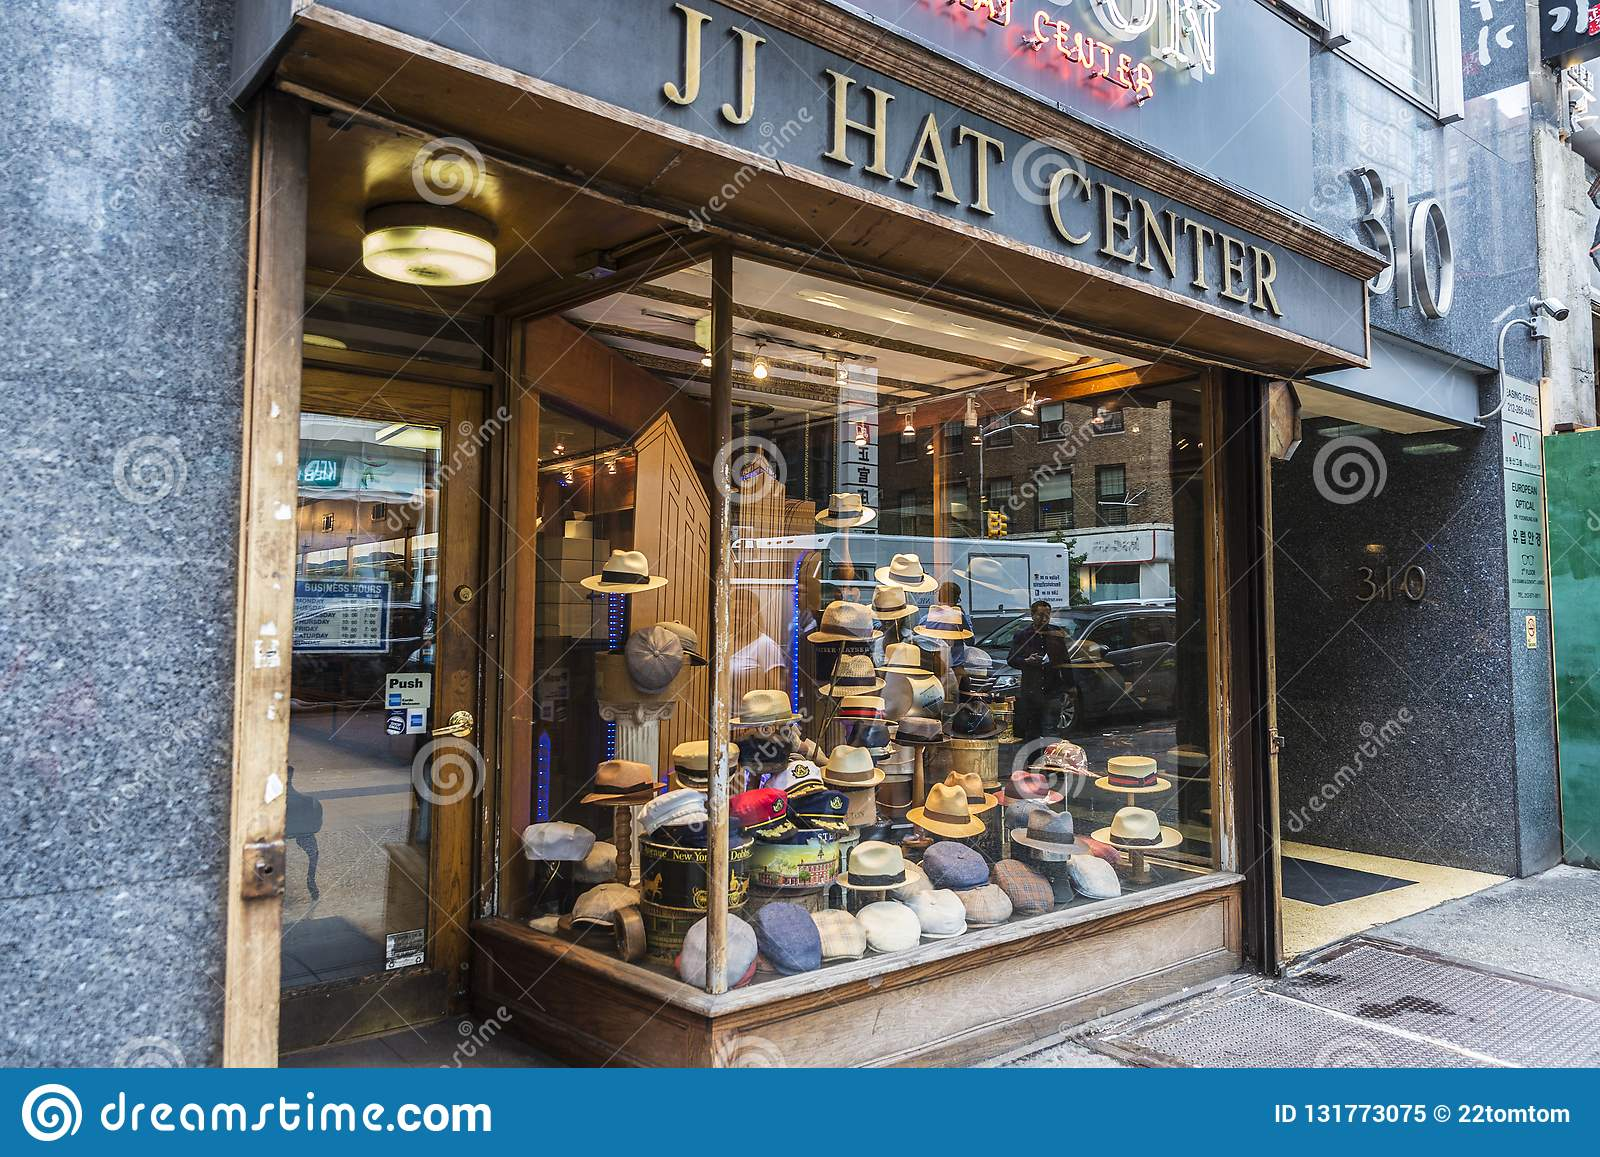 d25693c4edfe7 Millinery store called JJ Hat Center in 5th Avenue Fifth Avenue in  Manhattan in New York